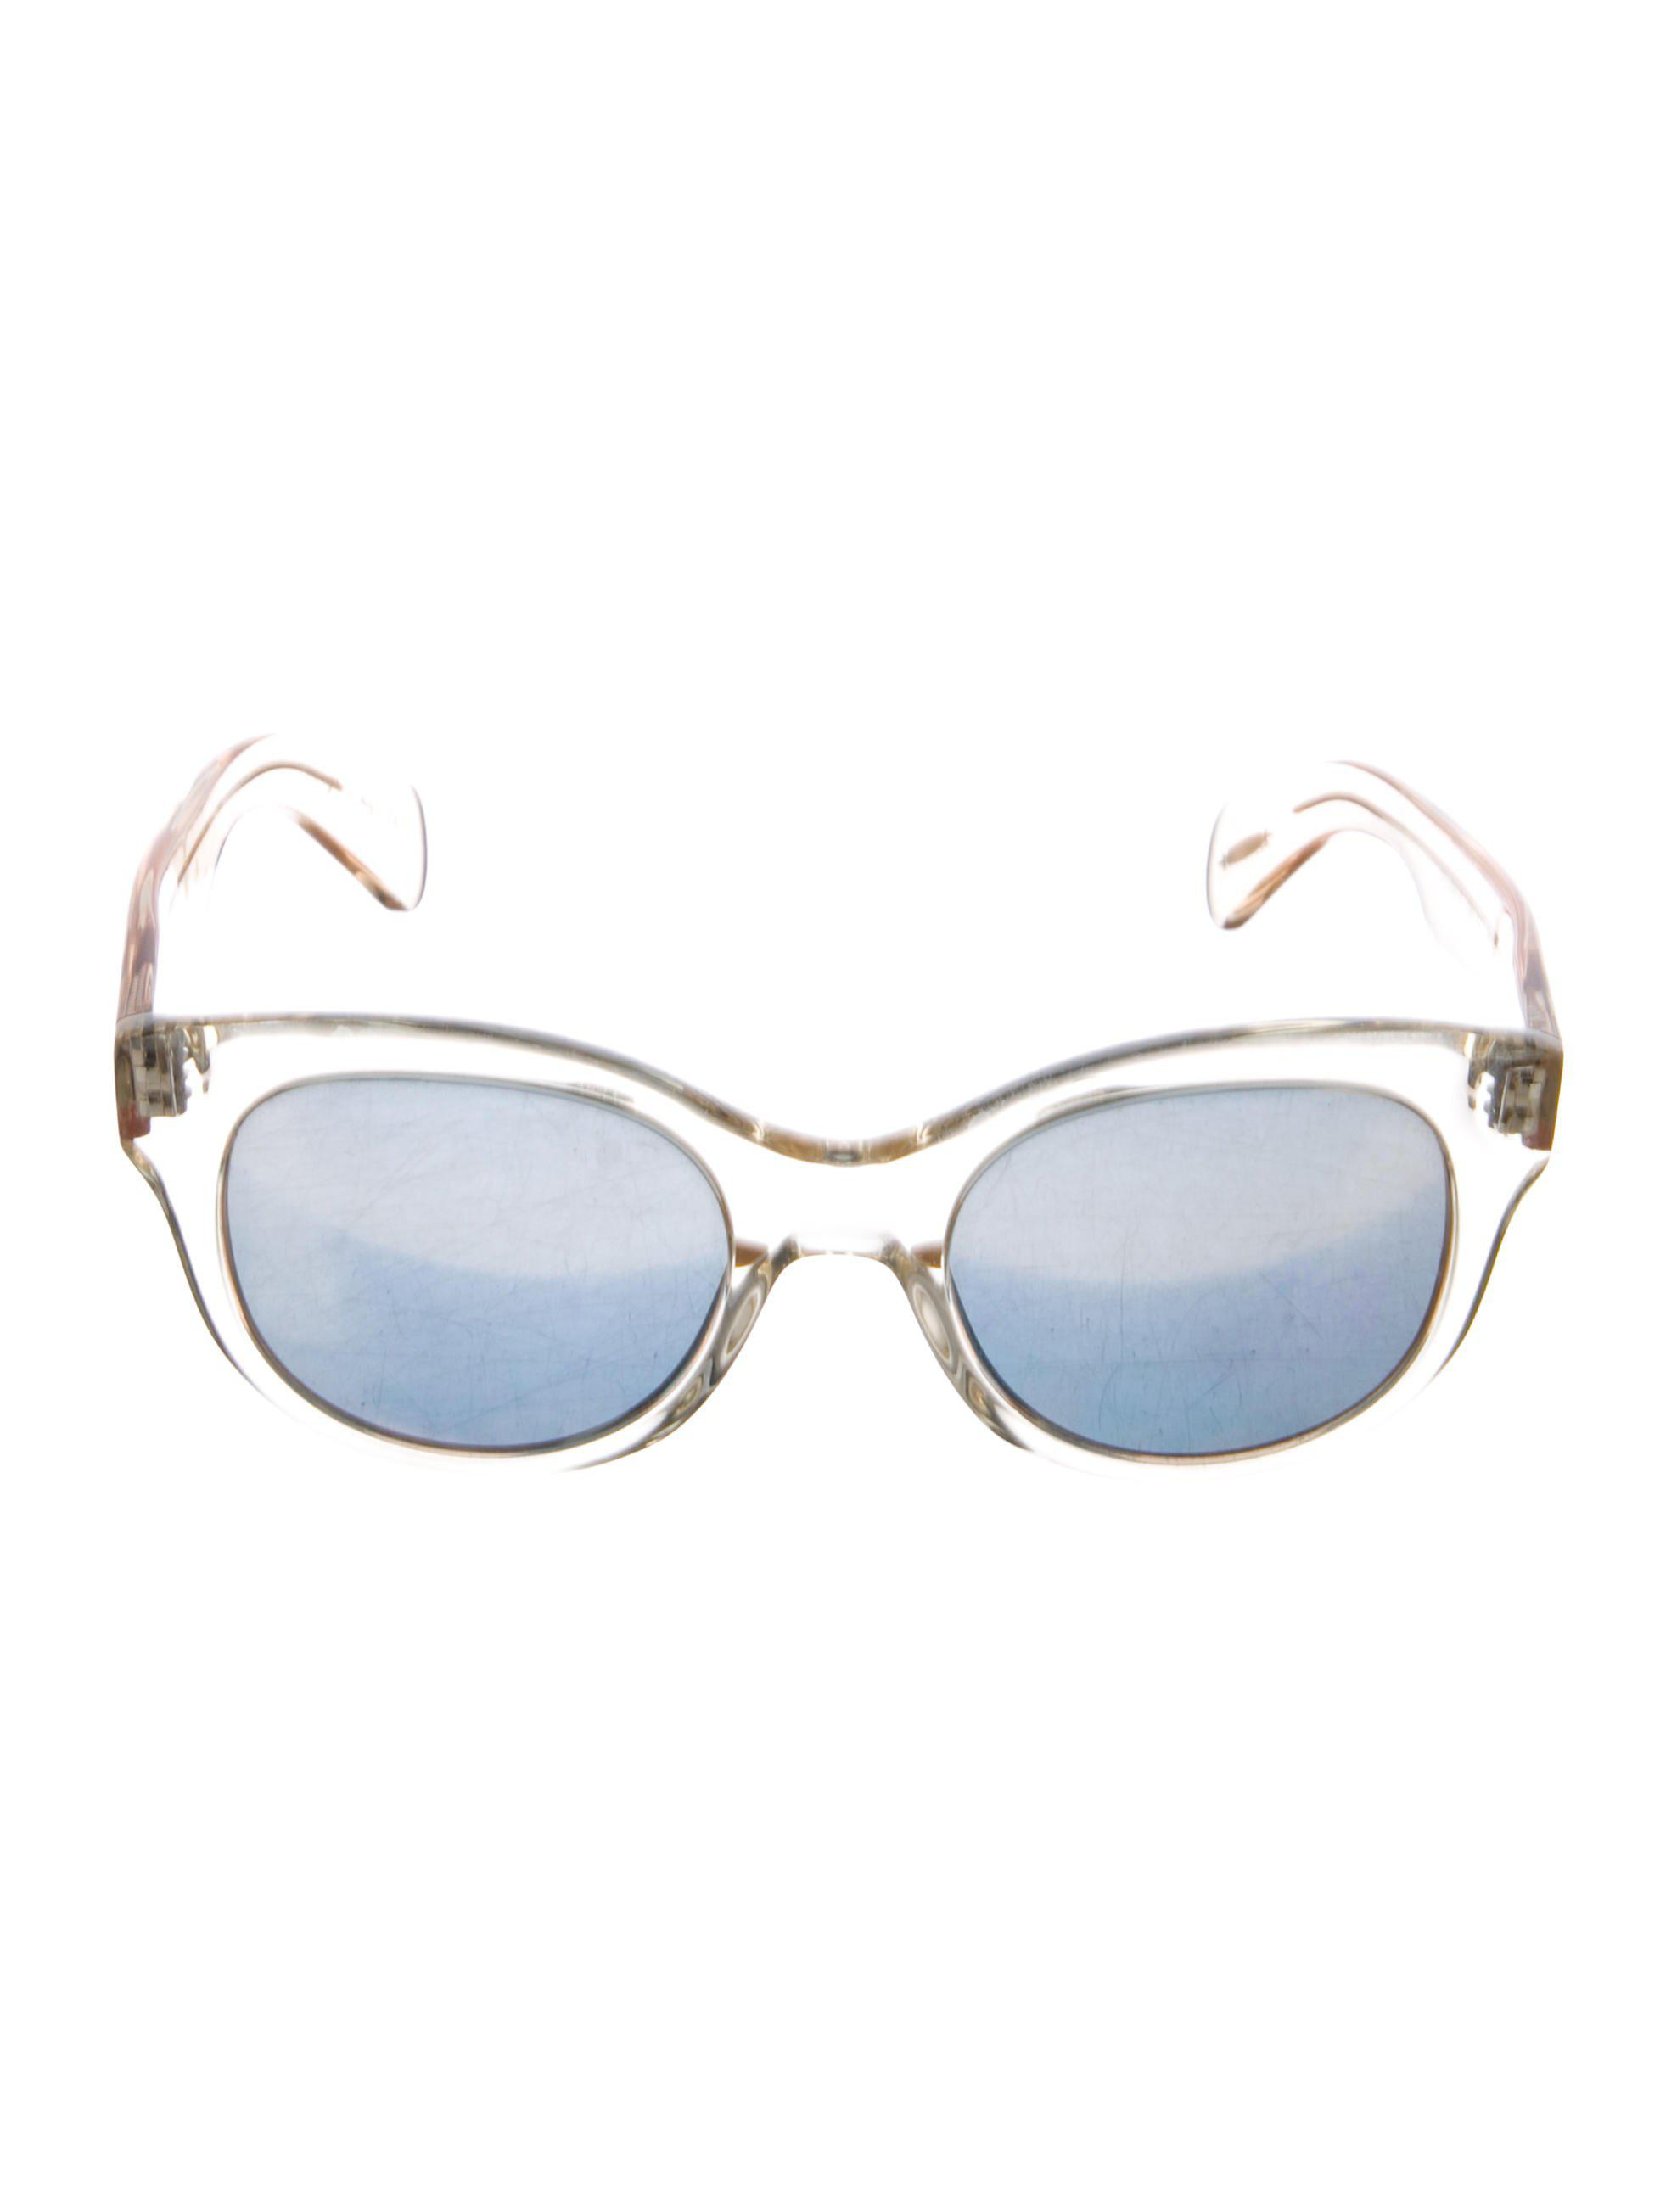 67f300cf83 Lyst - Oliver Peoples Jacey Mirrored Sunglasses Clear in Metallic